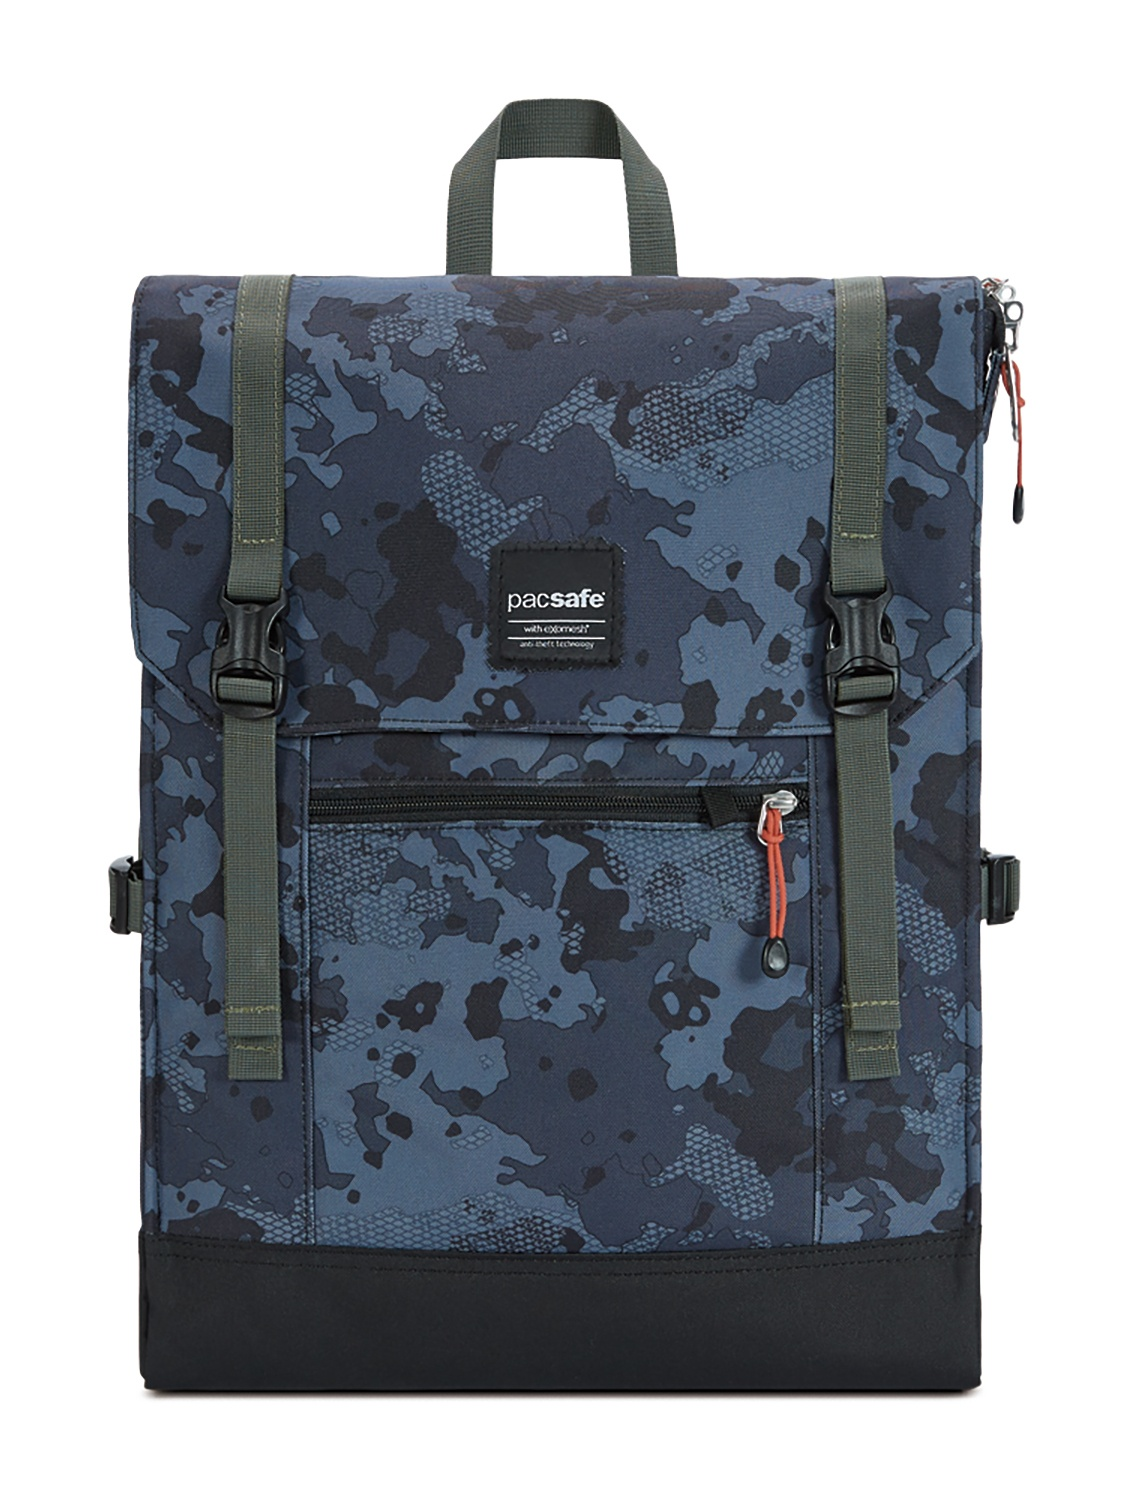 4B4C Cloth Carrying Case Anti-Theft Backpack Multi-Fonction Drone Luggage